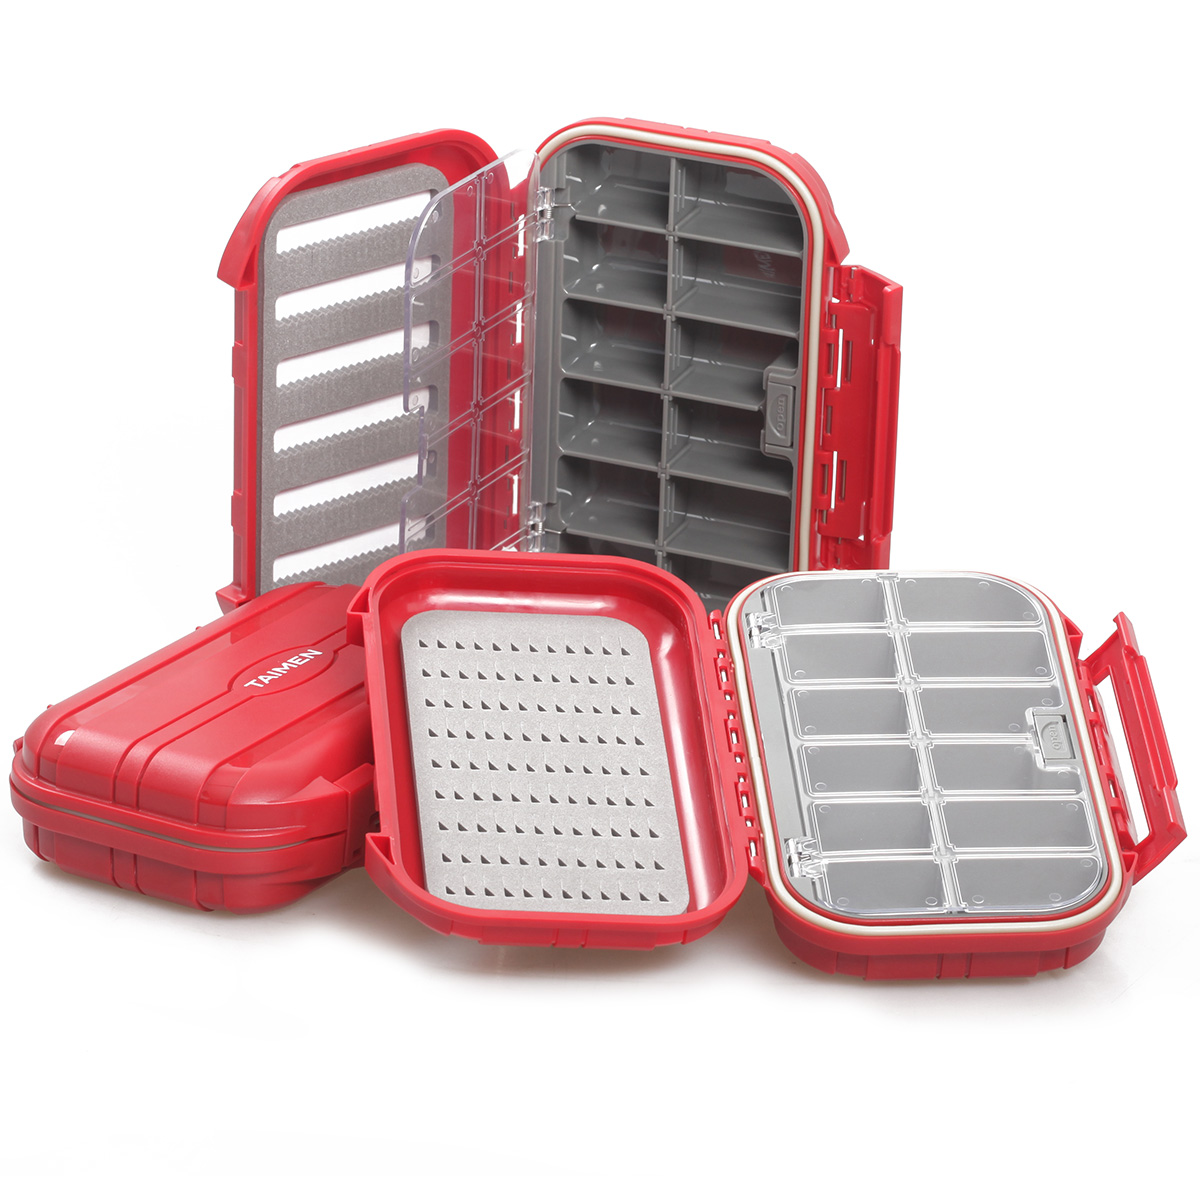 Taimen Waterproof Fly Box 3000 Compartment